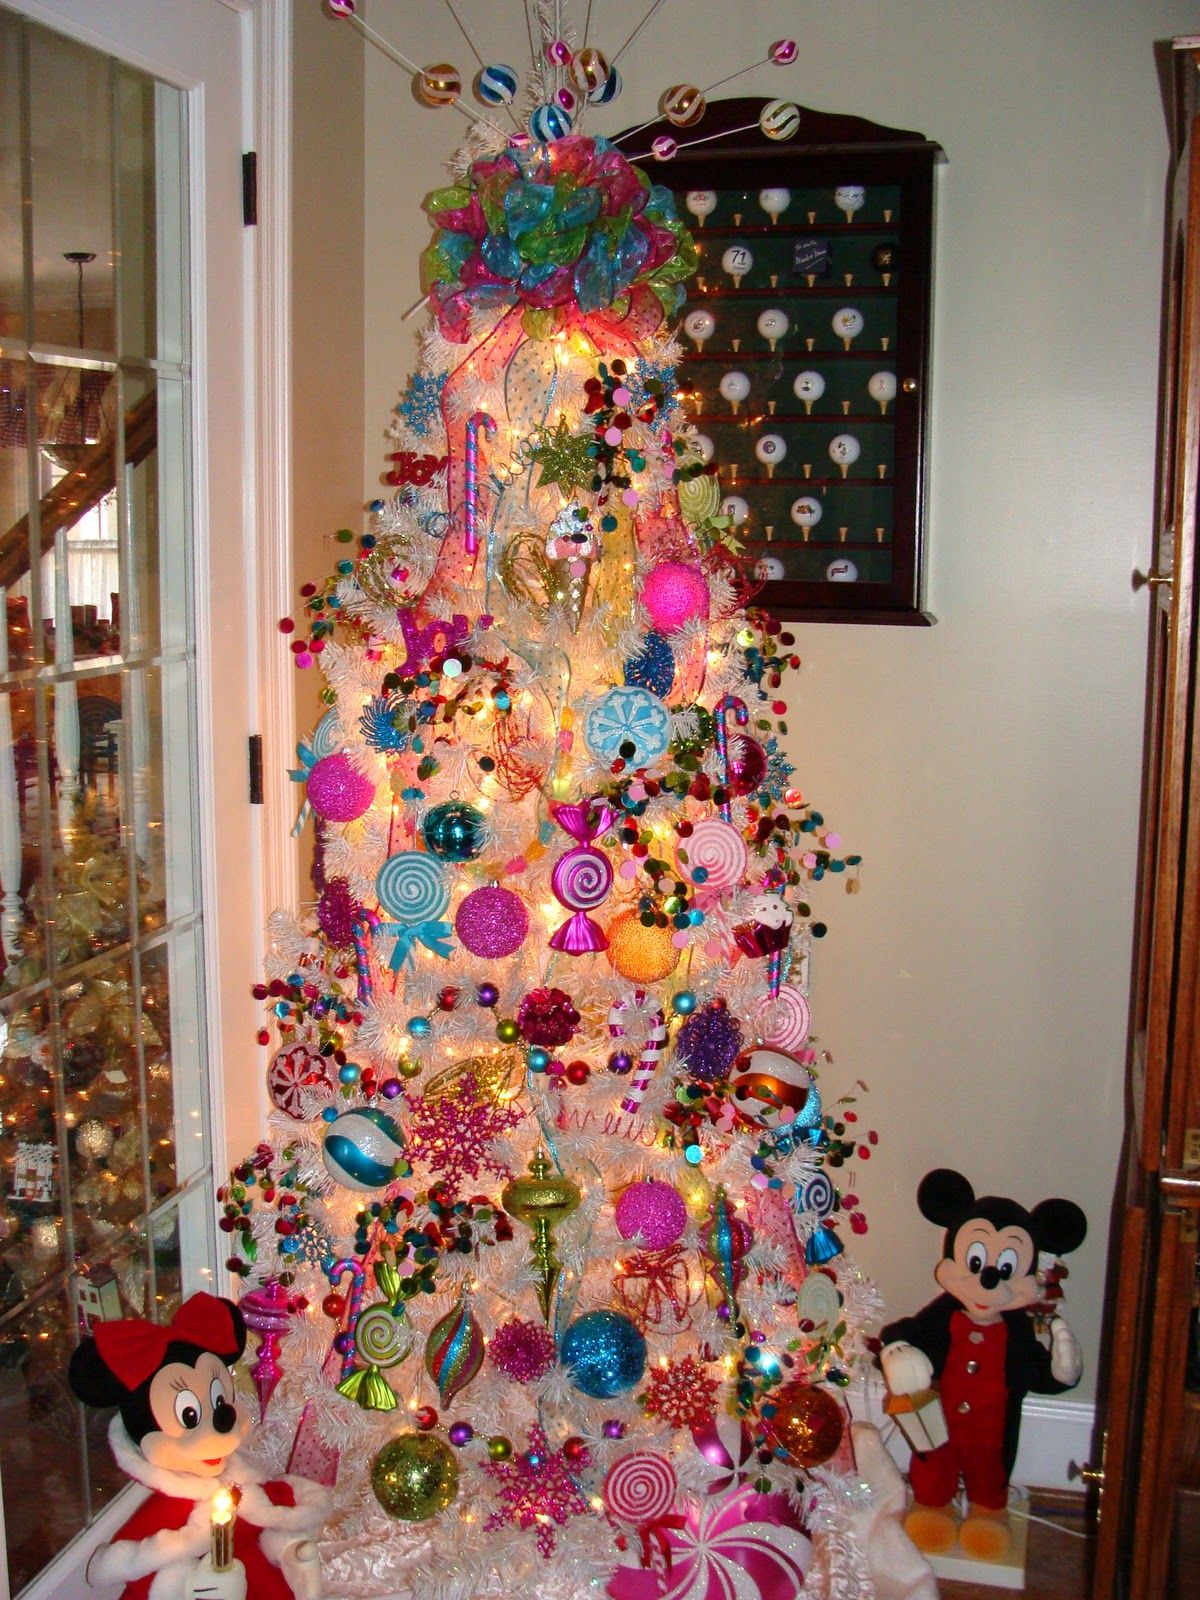 Candy Themed Christmas Decorations.35 Disney Christmas Decorations Ideas Disney Ornaments